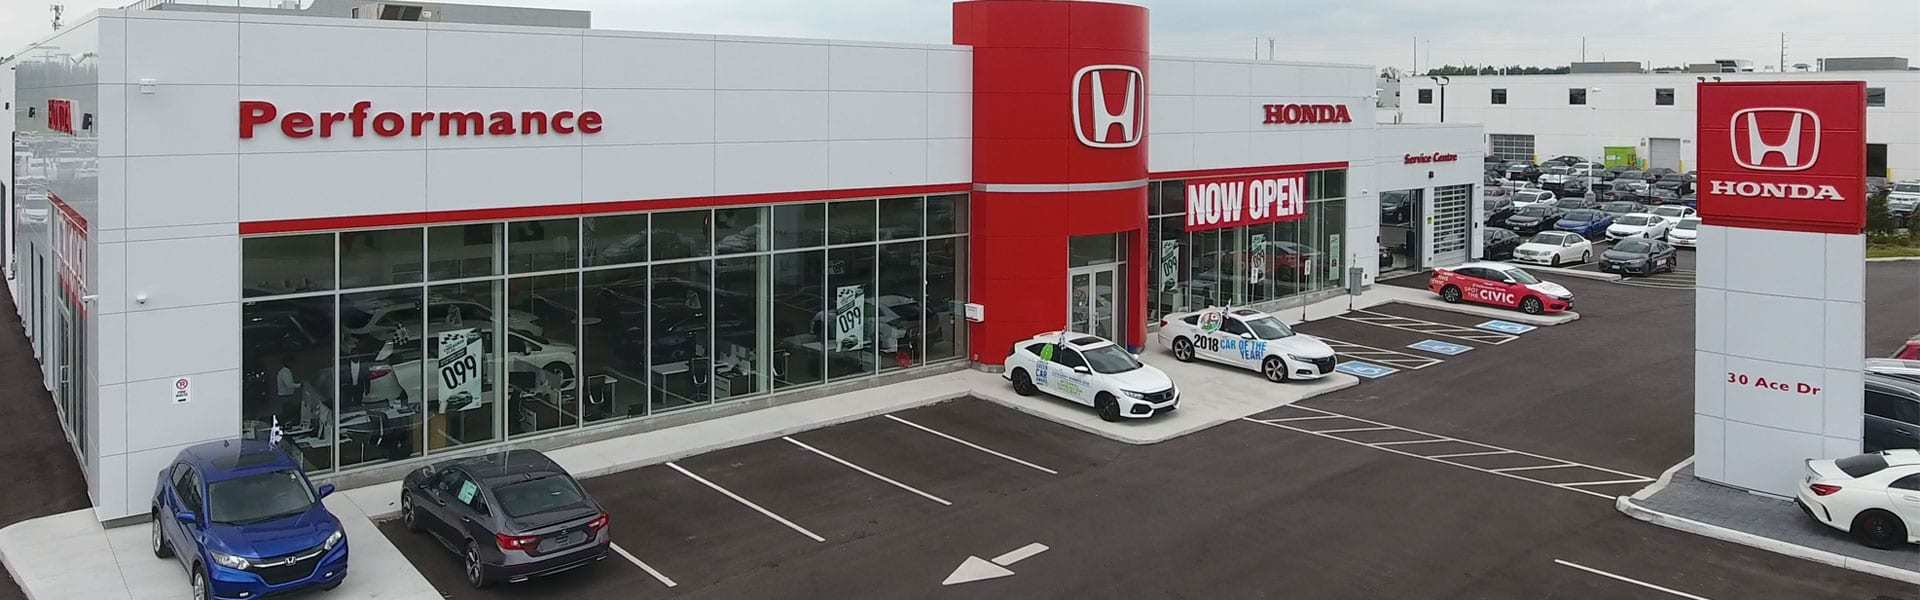 Performance Honda Dealership Photo